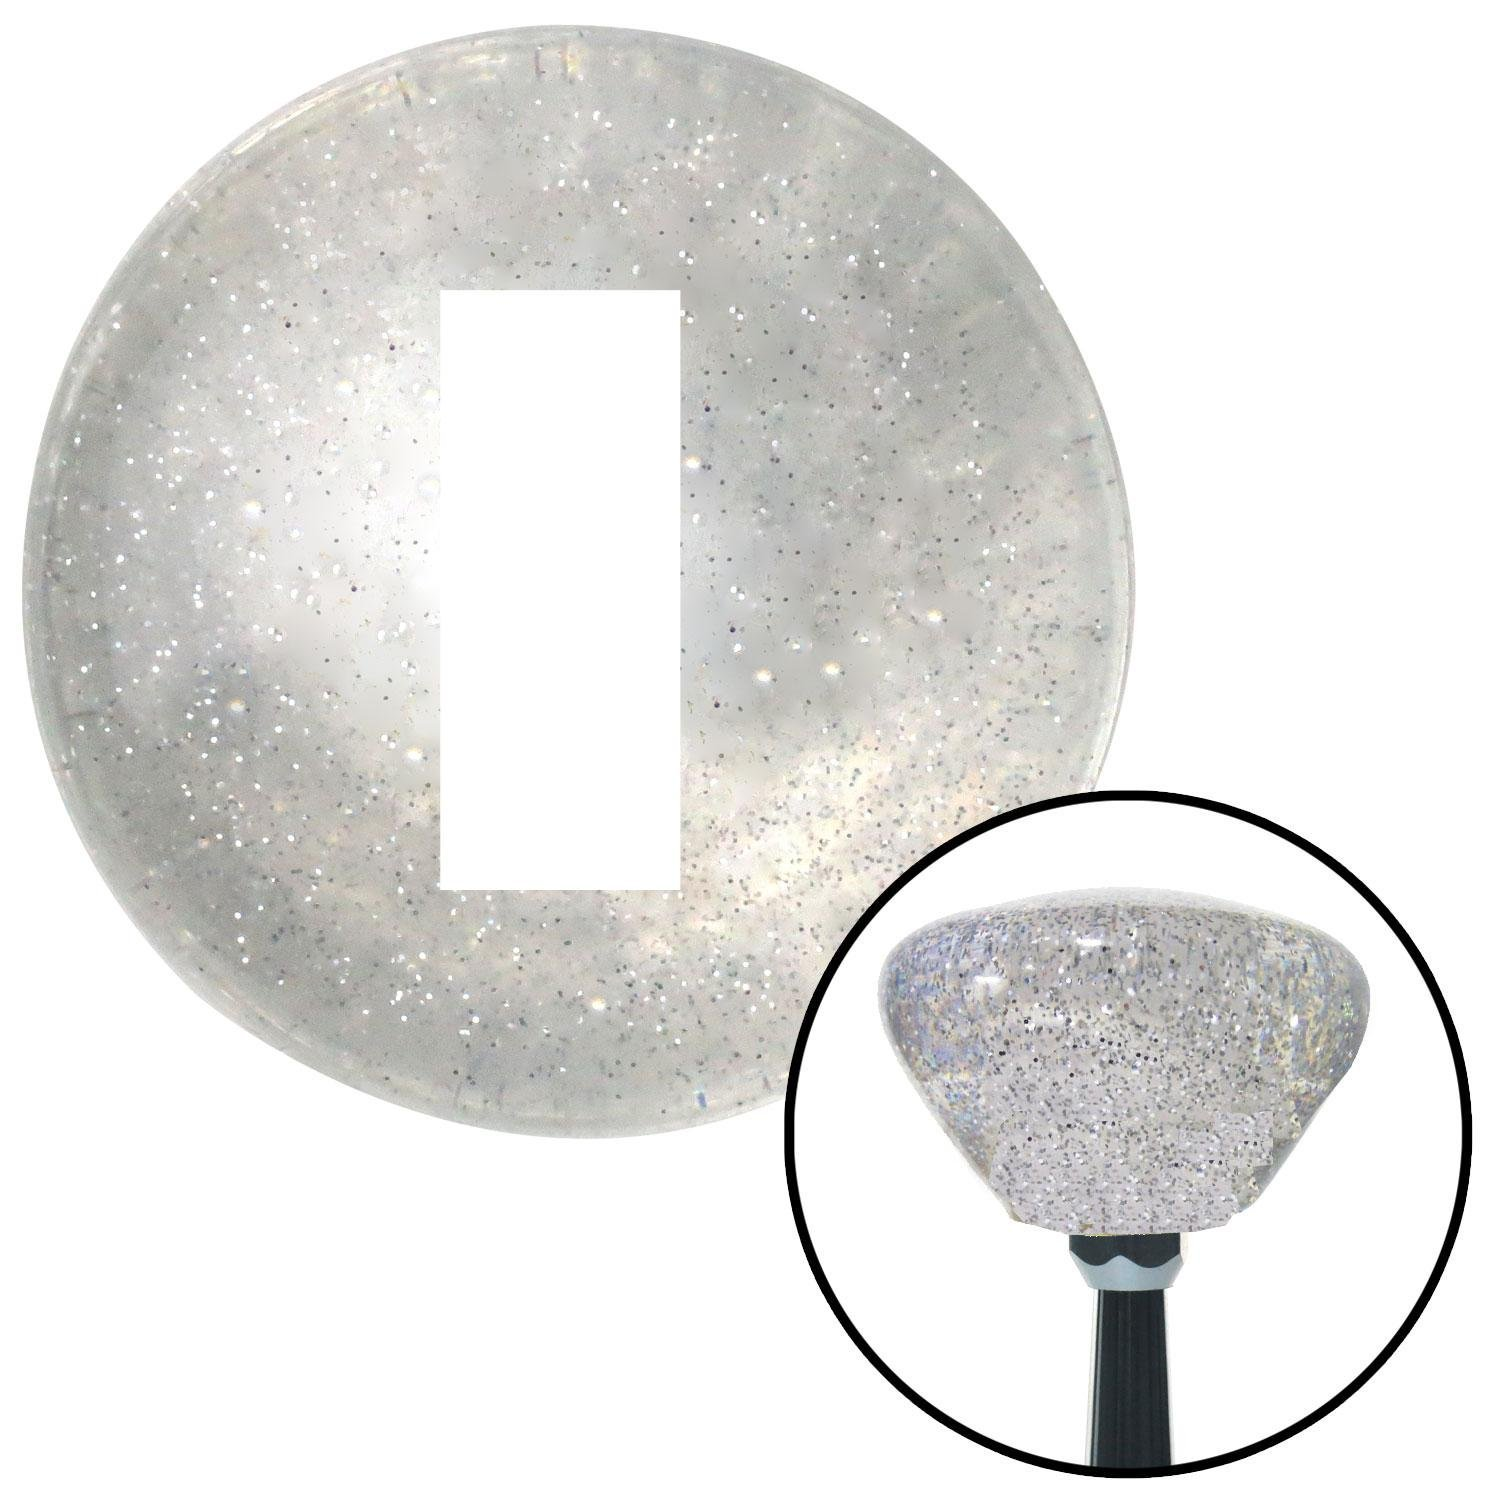 American Shifter 161843 Clear Retro Metal Flake Shift Knob with M16 x 1.5 Insert White Officer 01-2n Lt. and 1d Lt.